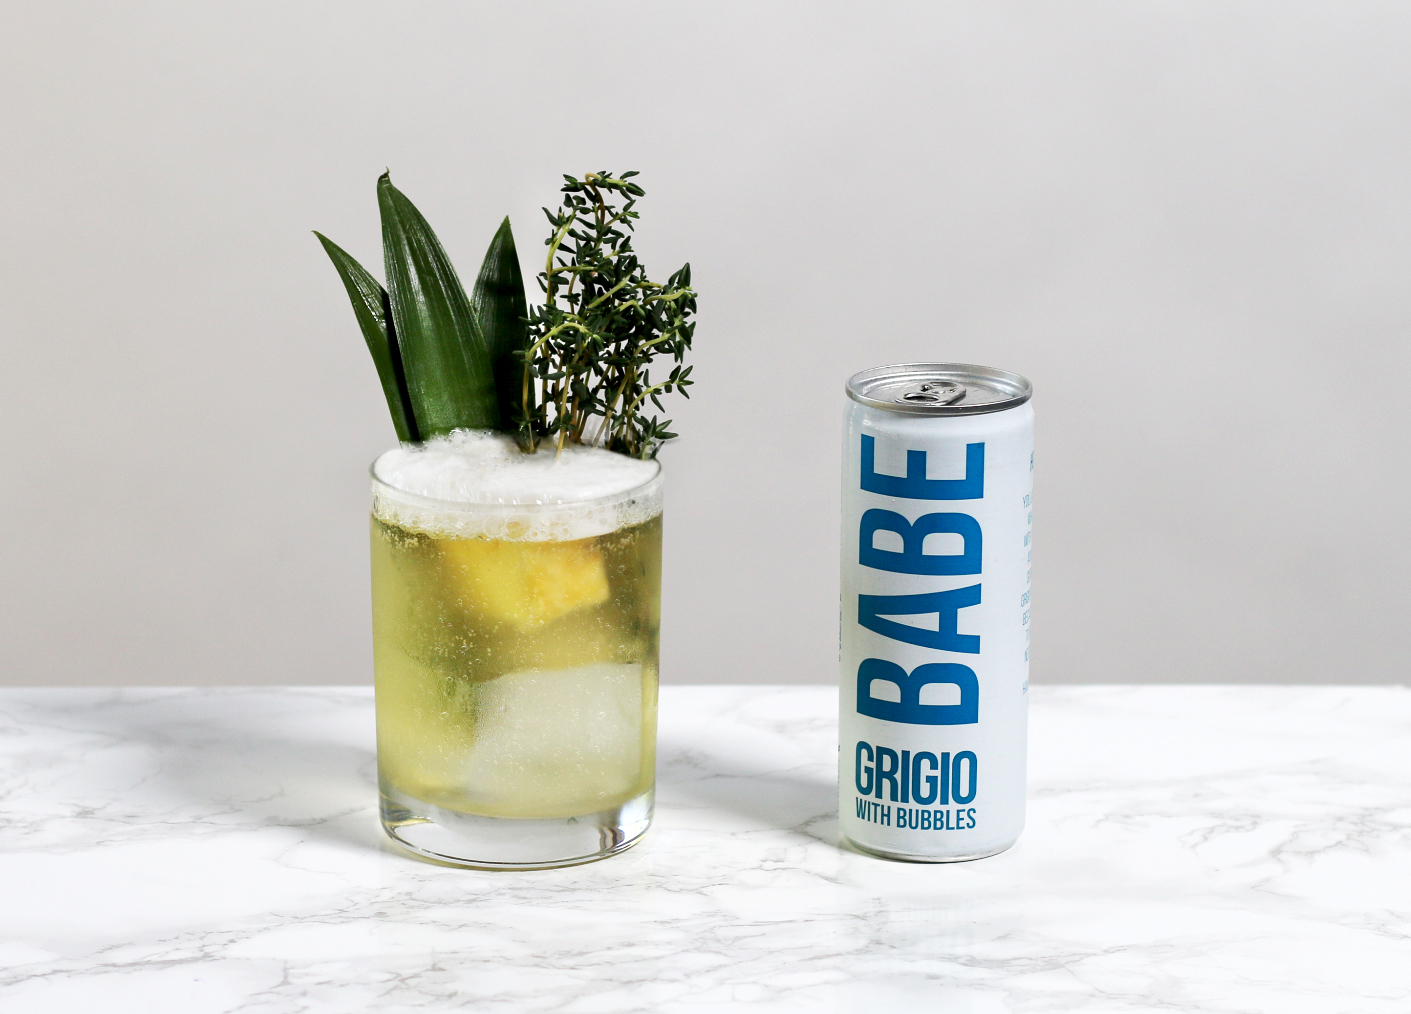 Babe Wine Chelsea Phillips Shares 4th of July Cocktail Recipes 3